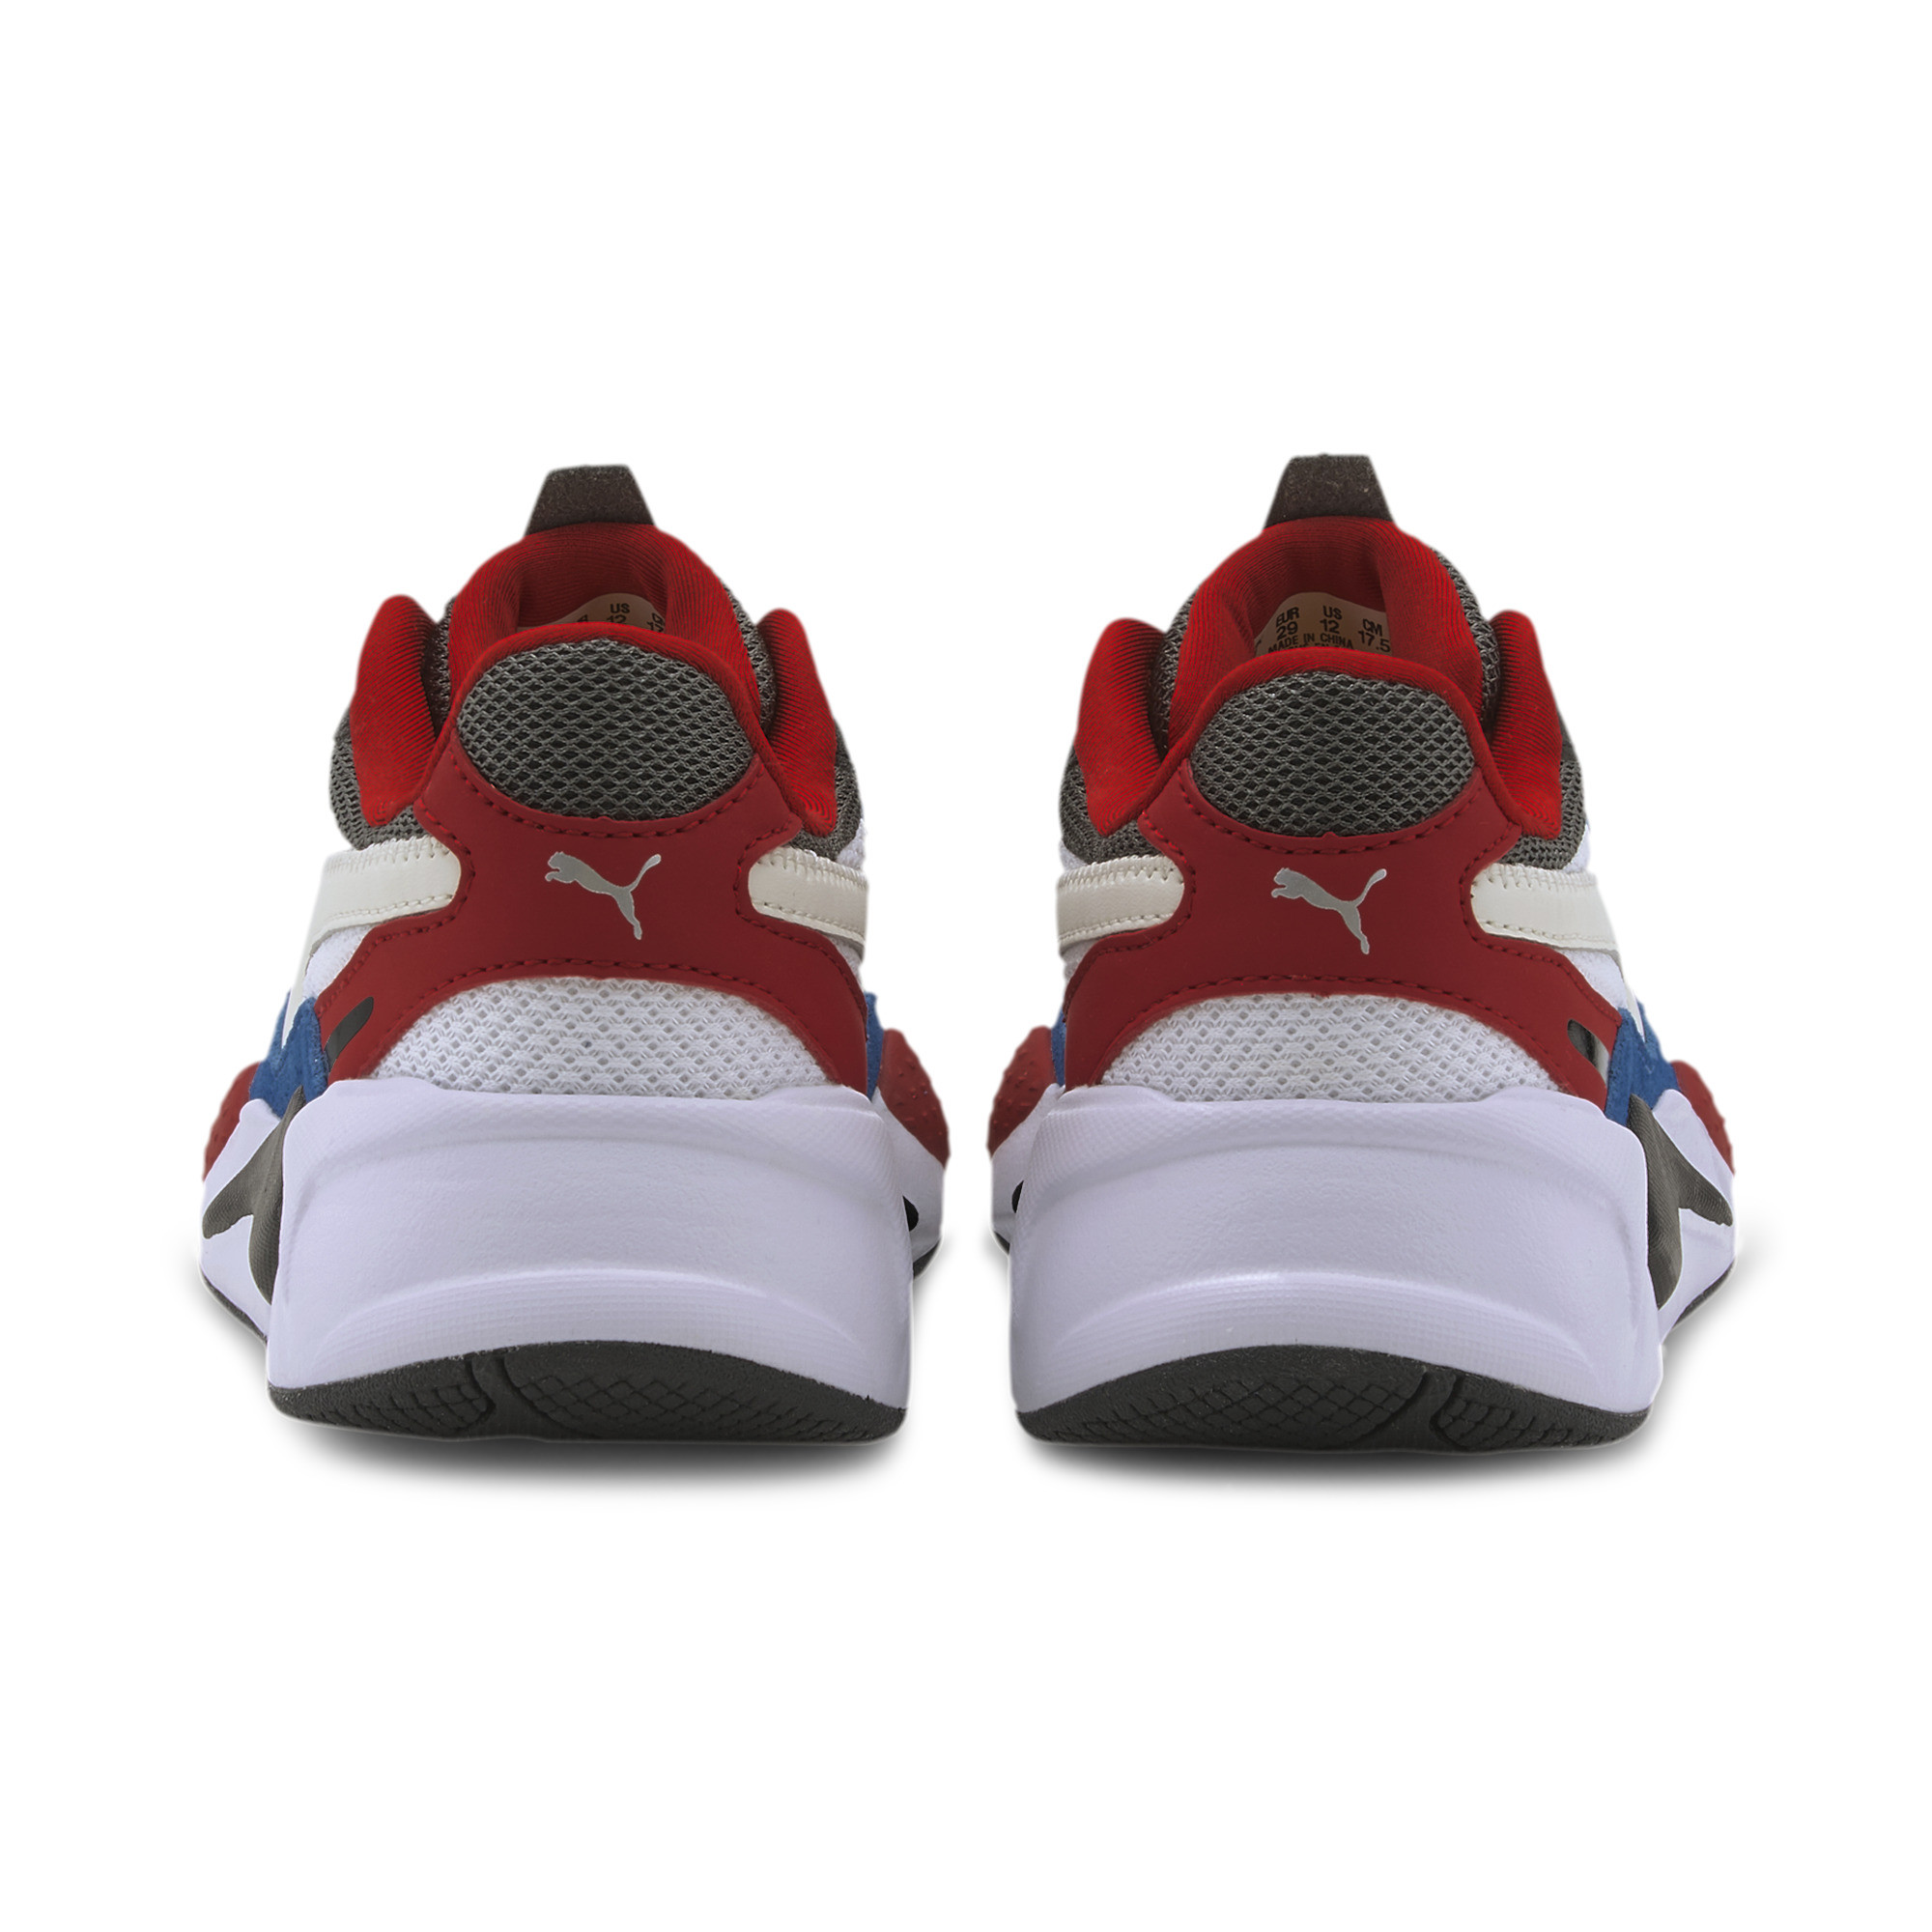 PUMA-RS-X-Puzzle-Little-Kids-039-Shoes-Kids-Shoe-Kids thumbnail 11